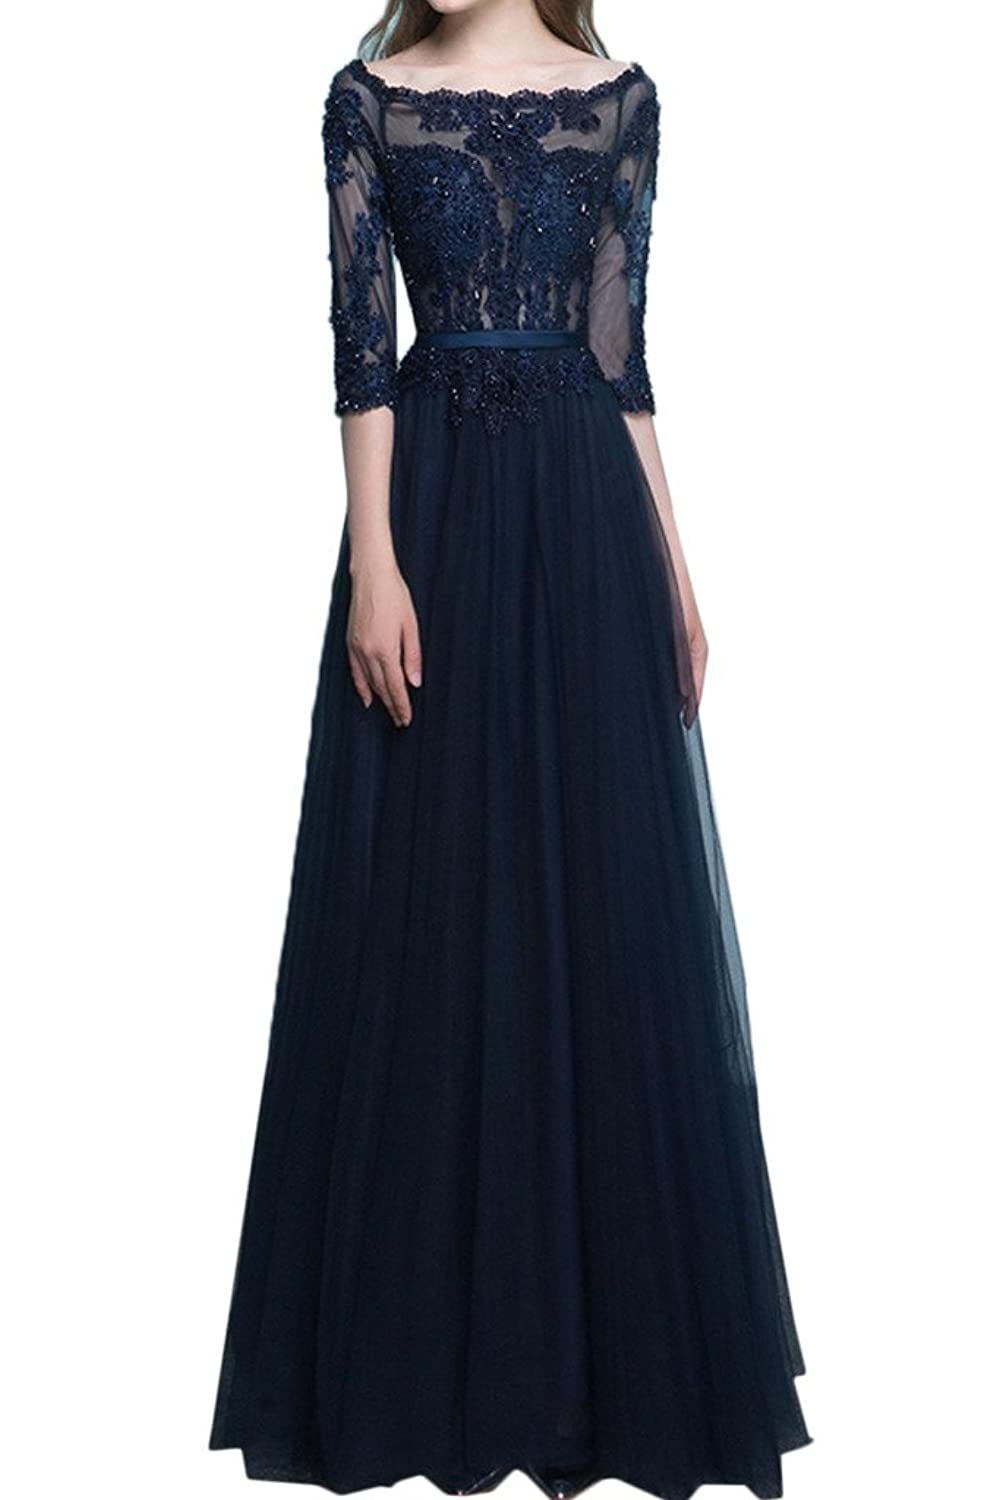 Gorgeous Bride A-line half Sleeves Lace Evening Mother of the Bride Dresses